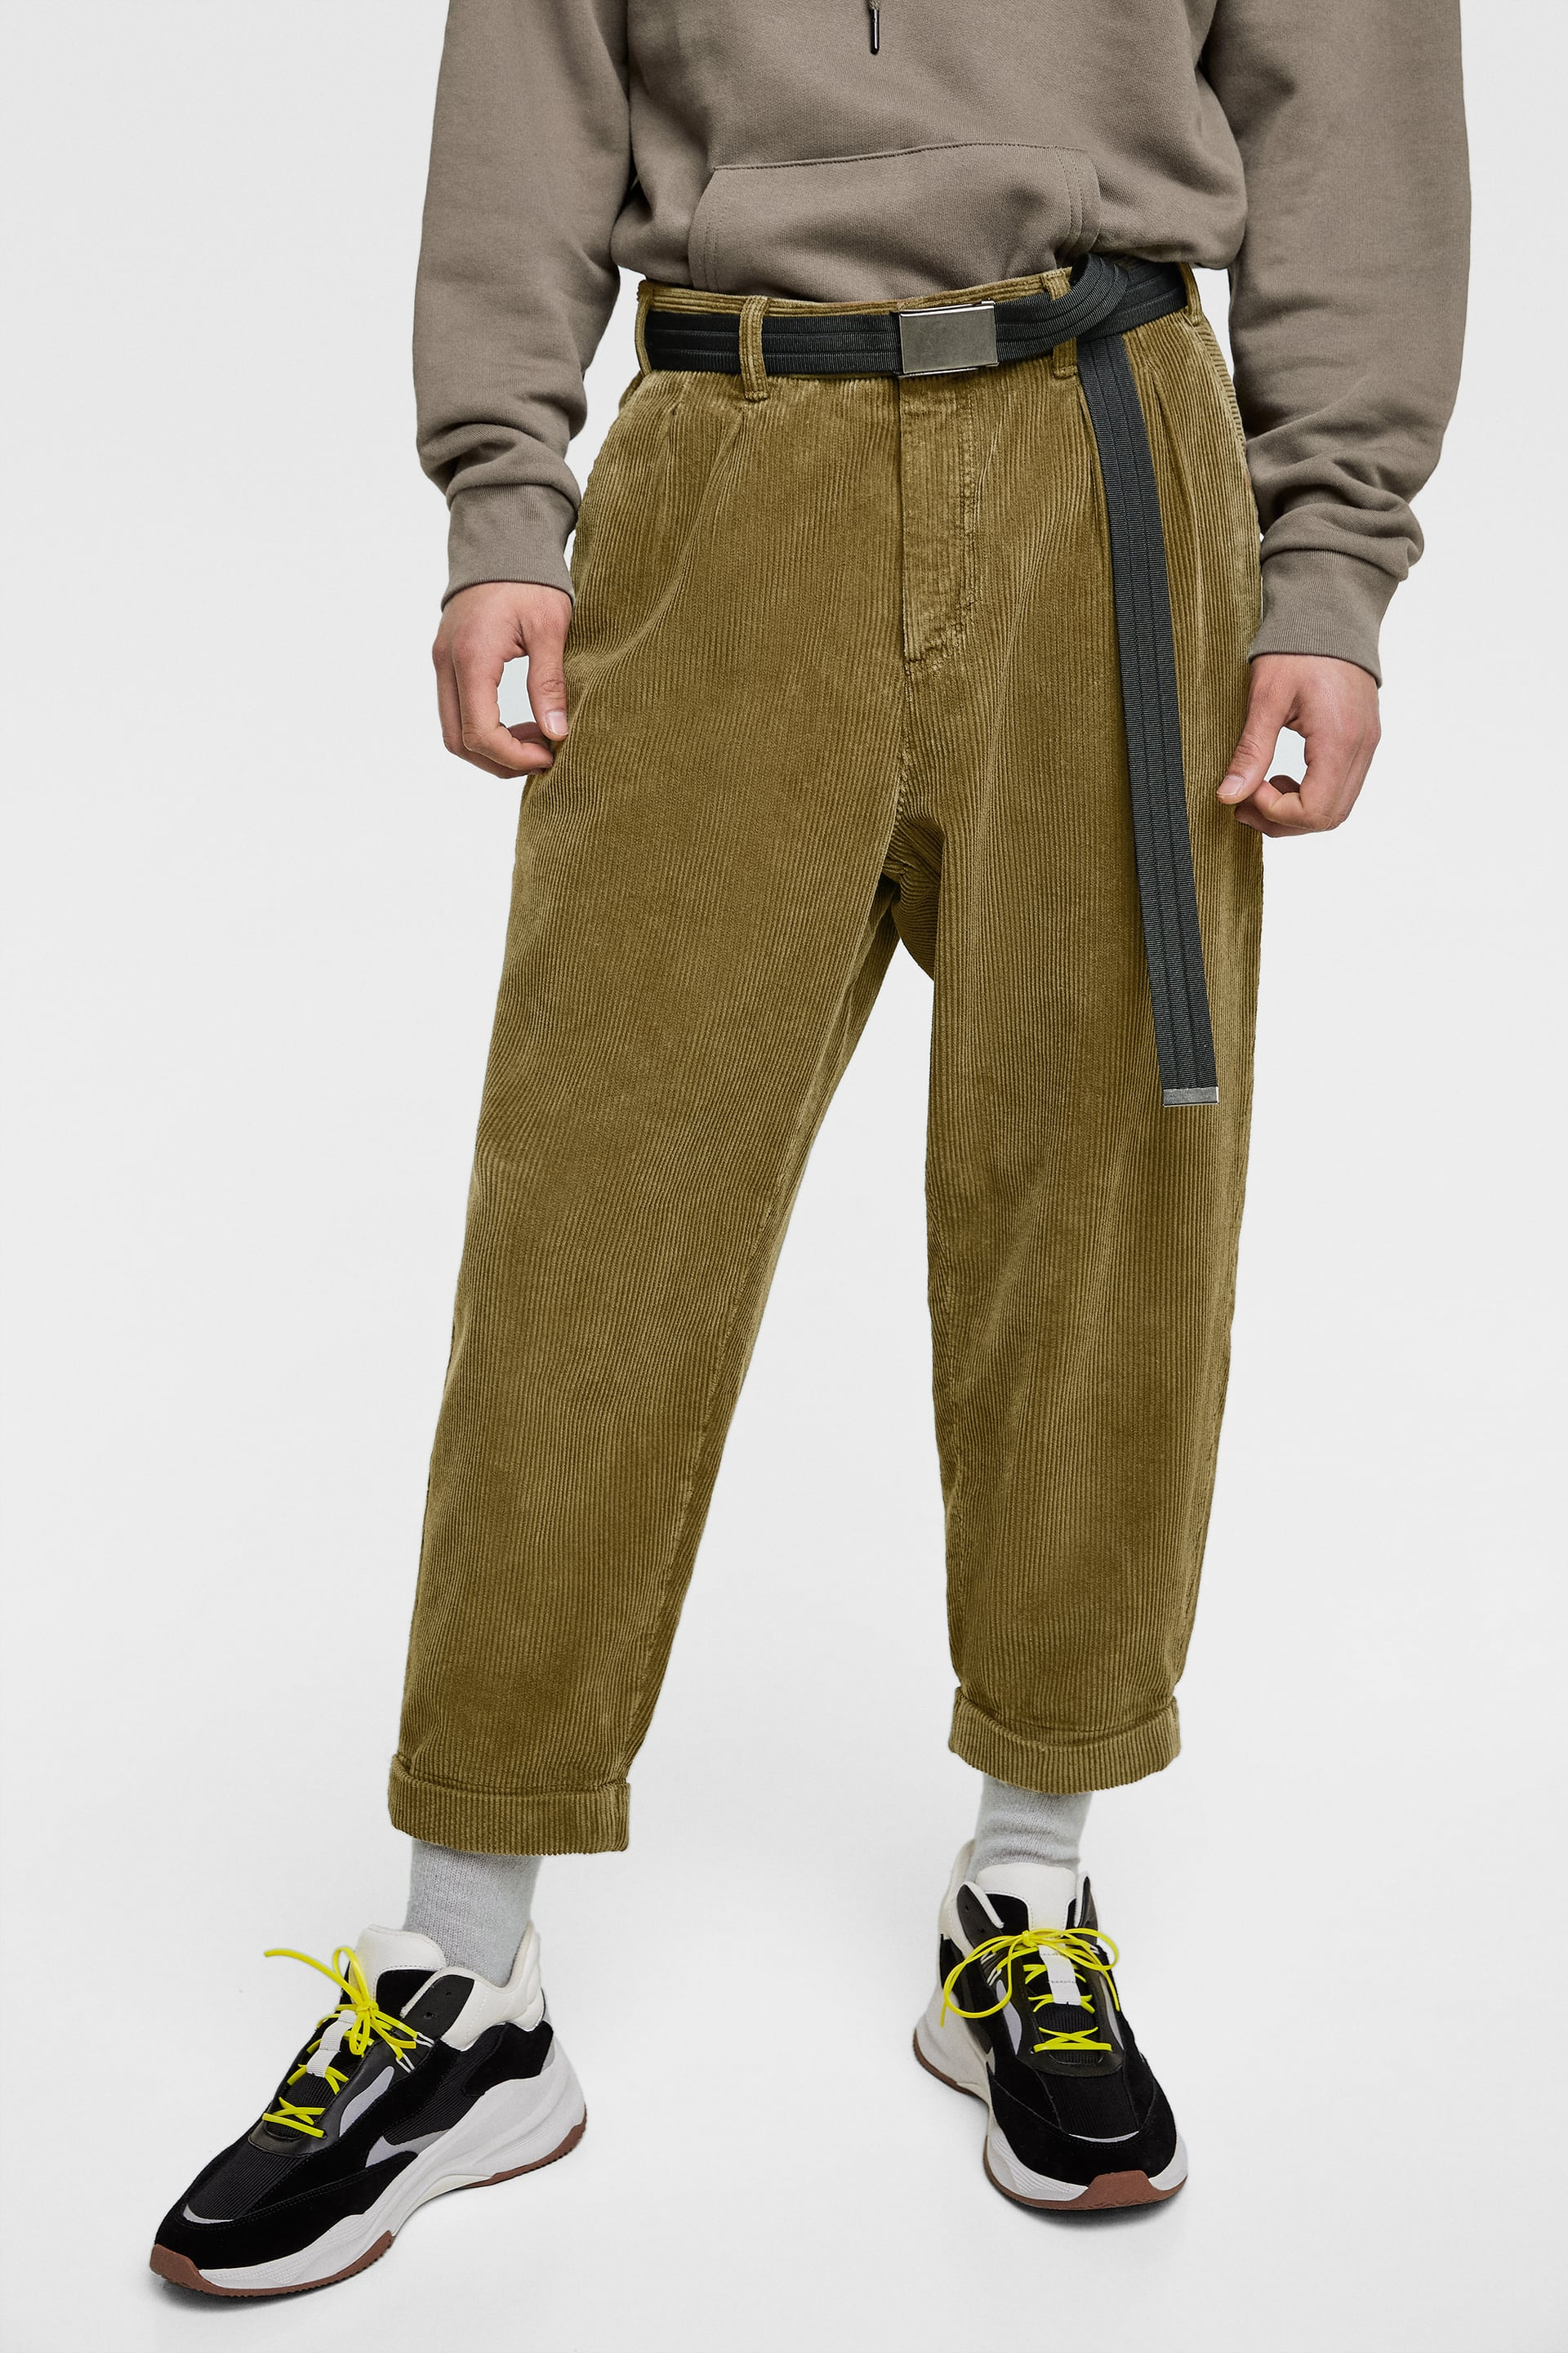 discount shop 100% top quality 2019 clearance sale RELAXED FIT CORDUROY PANTS - Casual-PANTS-MAN-SALE   ZARA United States